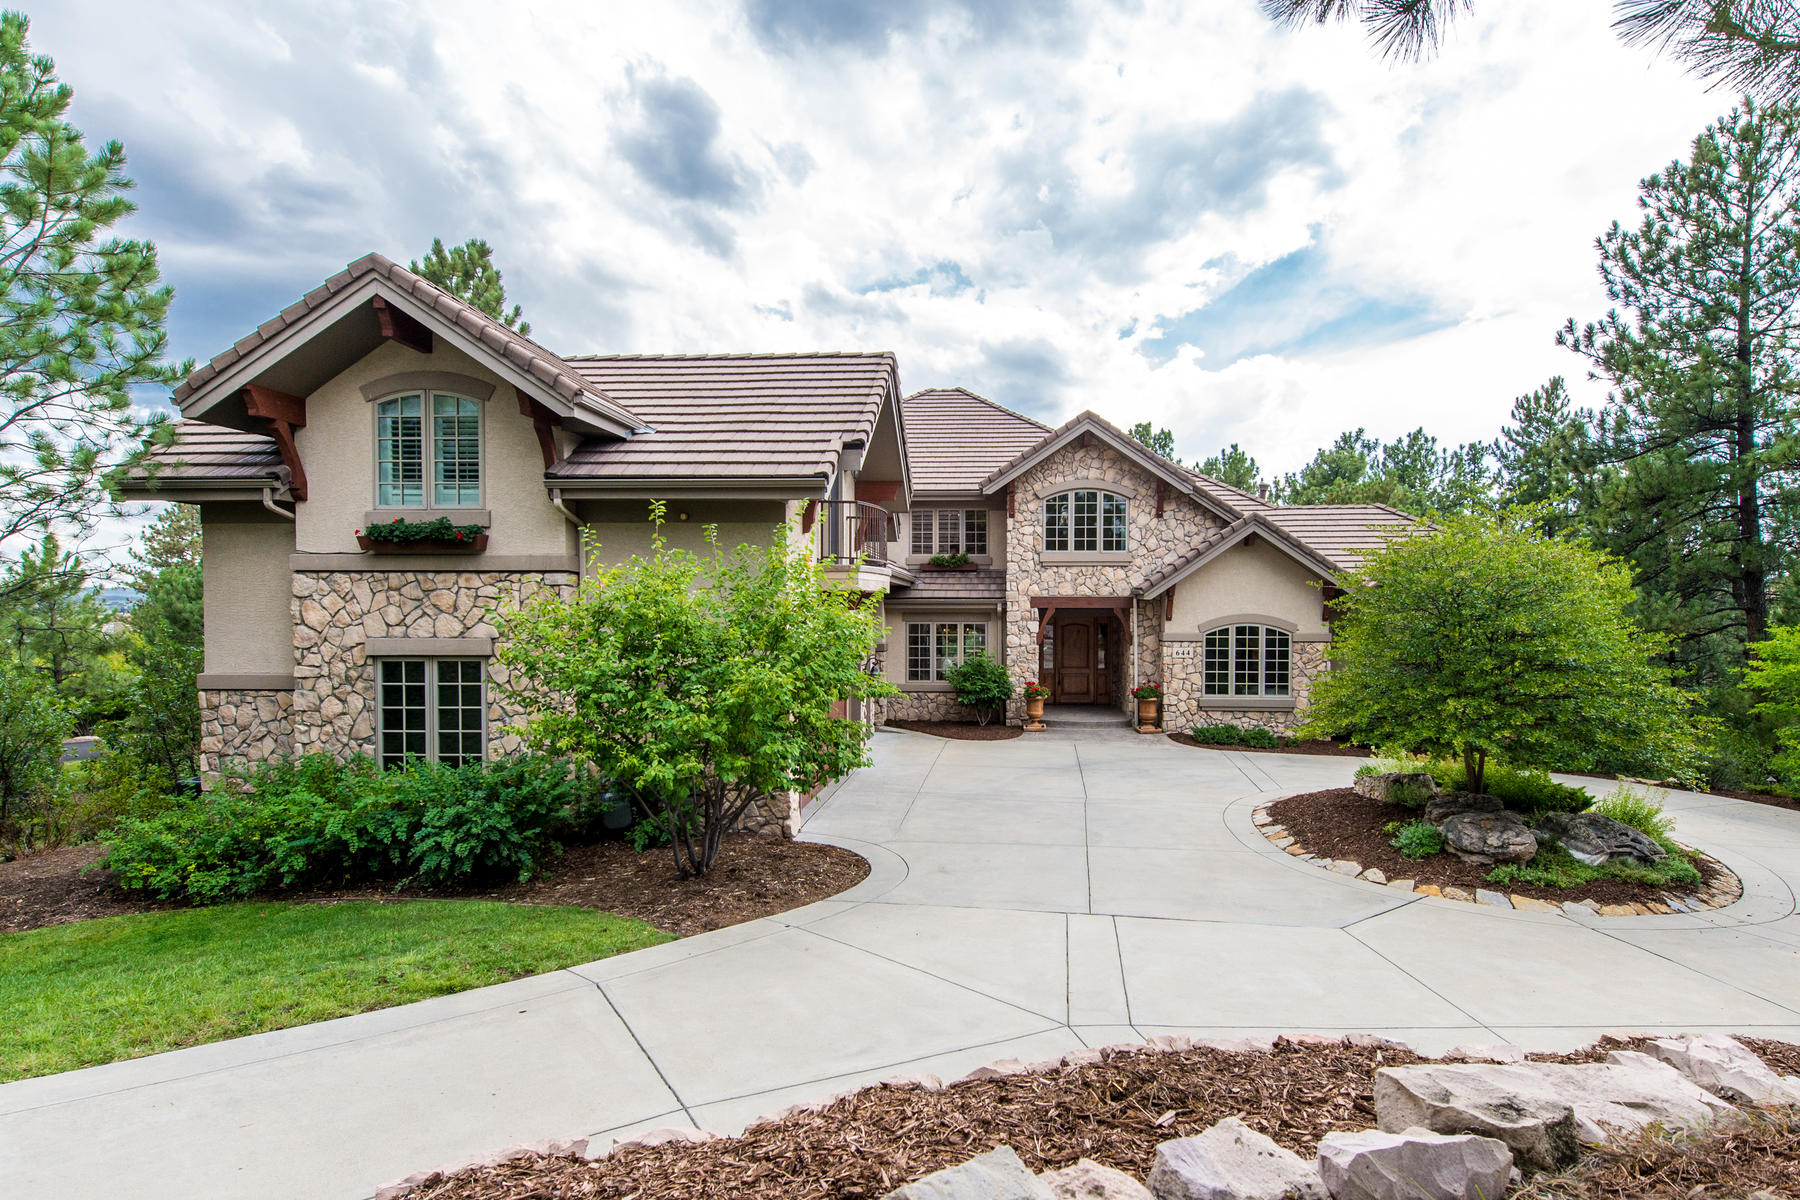 Single Family Home for Active at Capture your Colorado dream with this magnificent one-of-a-kind home that is per 644 Ruby Trust Way Castle Rock, Colorado 80108 United States